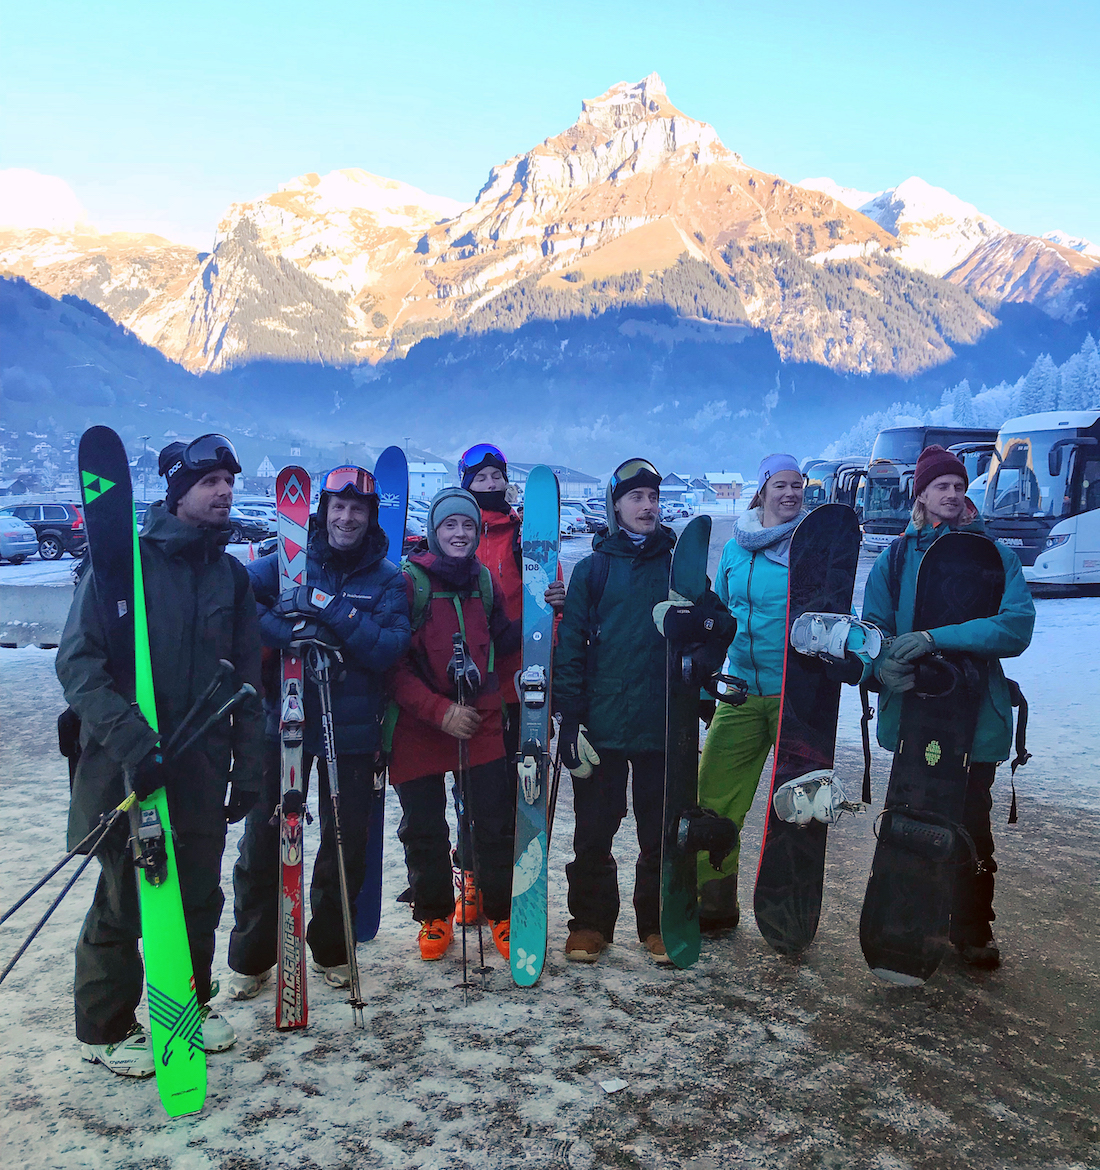 Ski lodge Engelberg Team finished with a leadership course made by Mount To Lead.